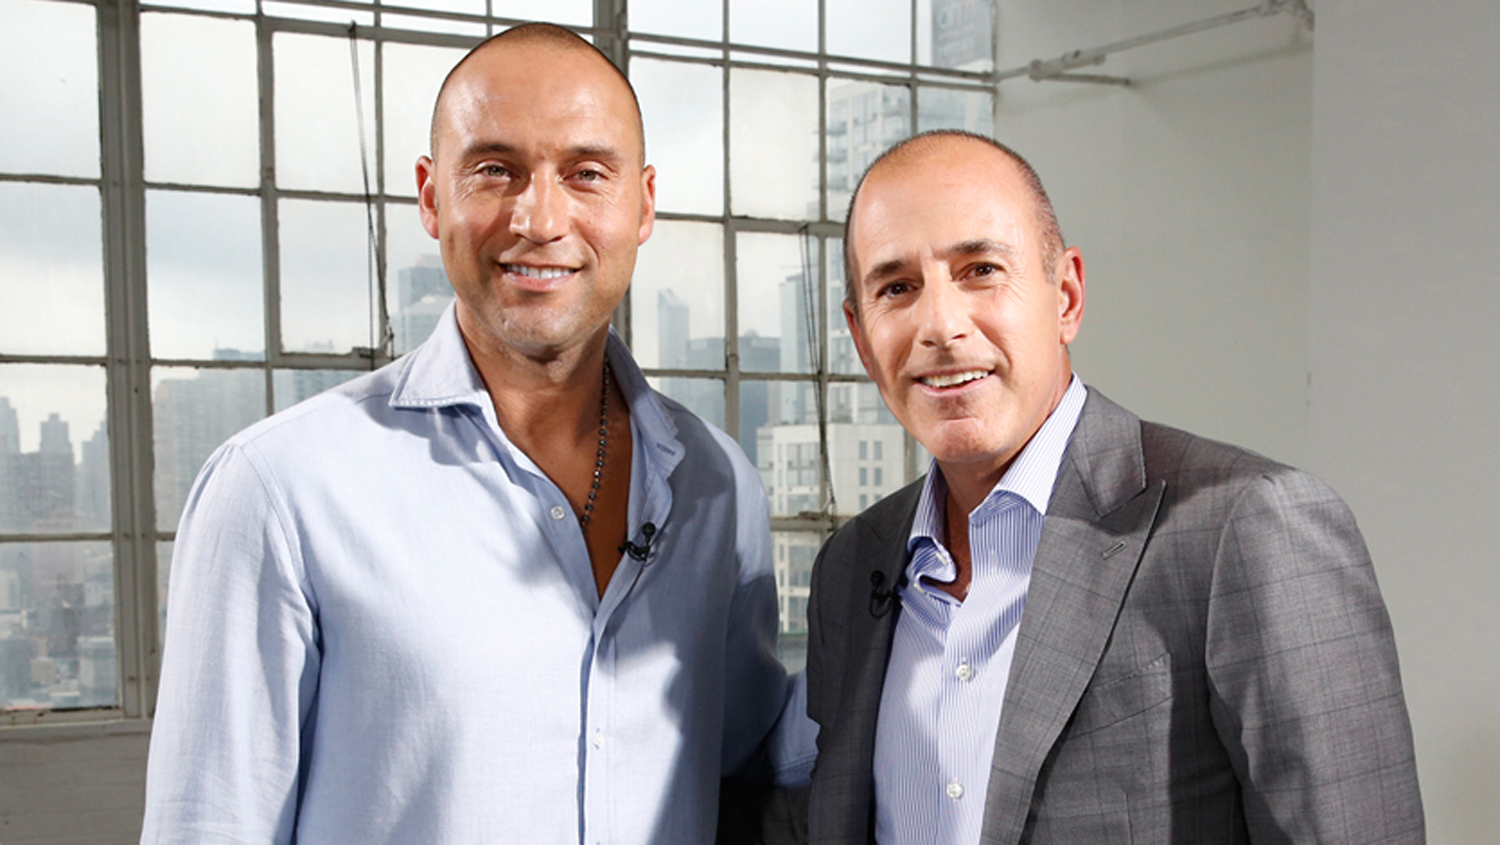 Derek Jeter Talks Life After Retirement Tells Matt Lauer